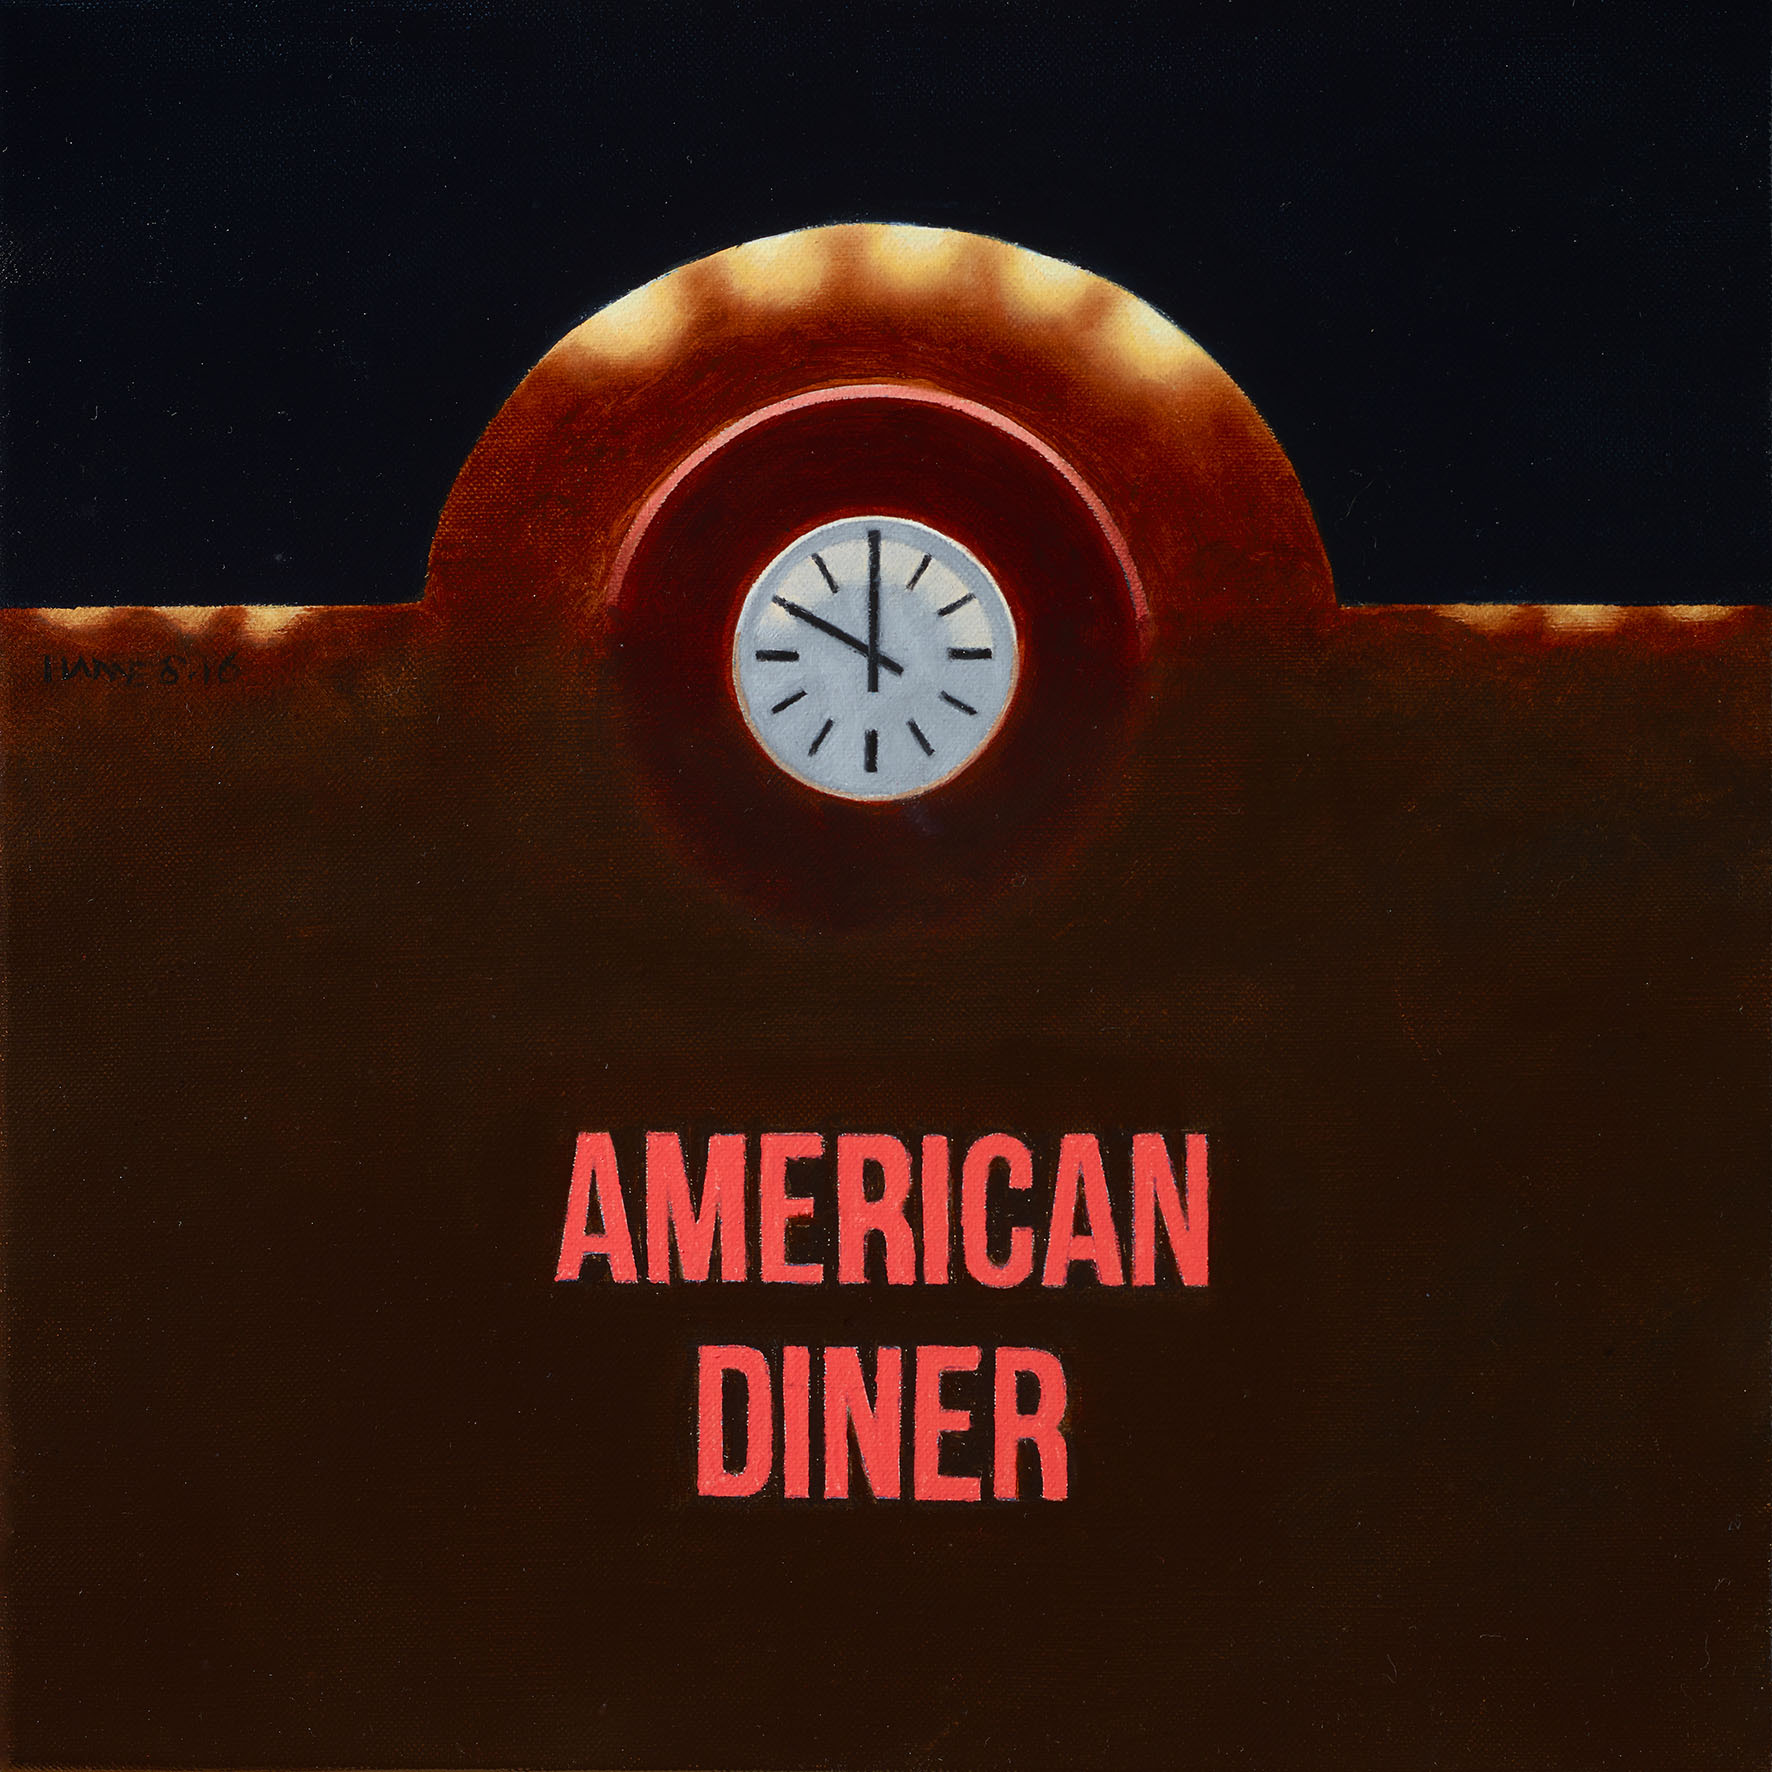 Diner -  Available